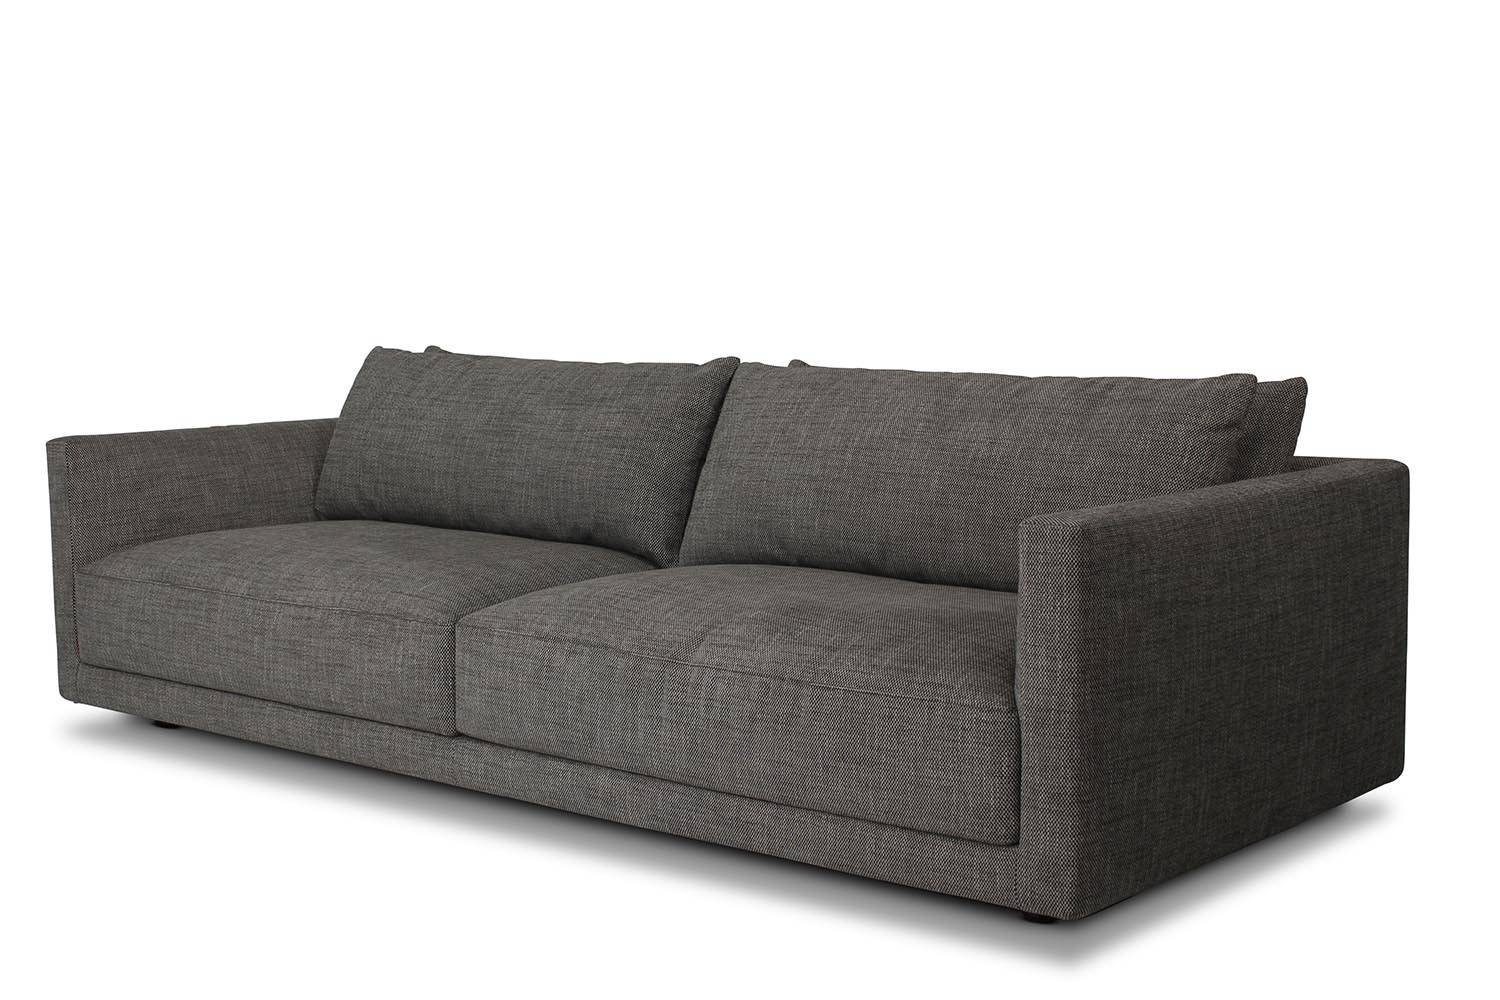 Bristol Sofa Cm. 254Poliform, Designjean Marie Massaud in Bristol Sofas (Image 4 of 30)